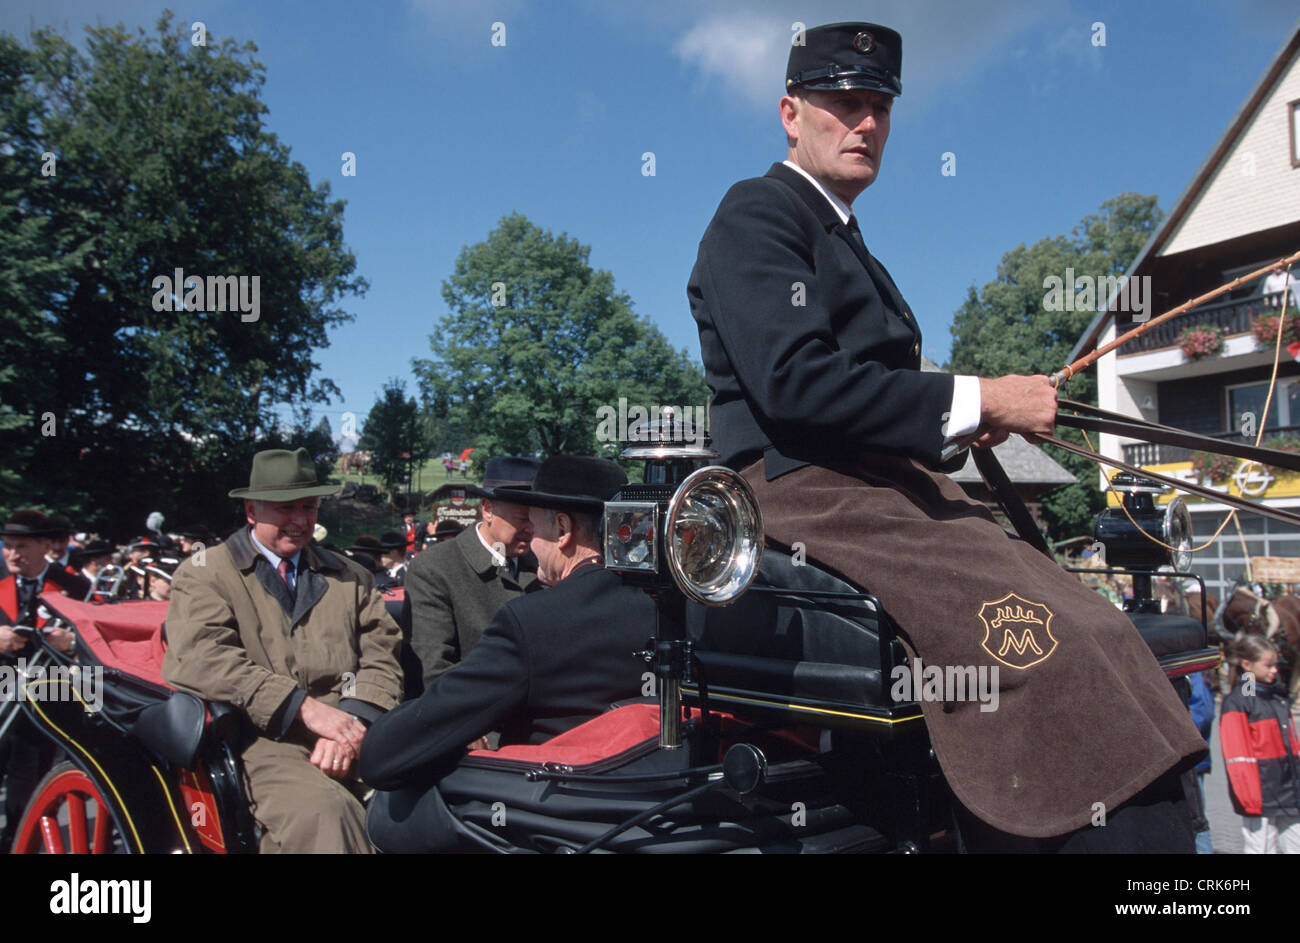 Coachman on parade in the Black Forest - Stock Image